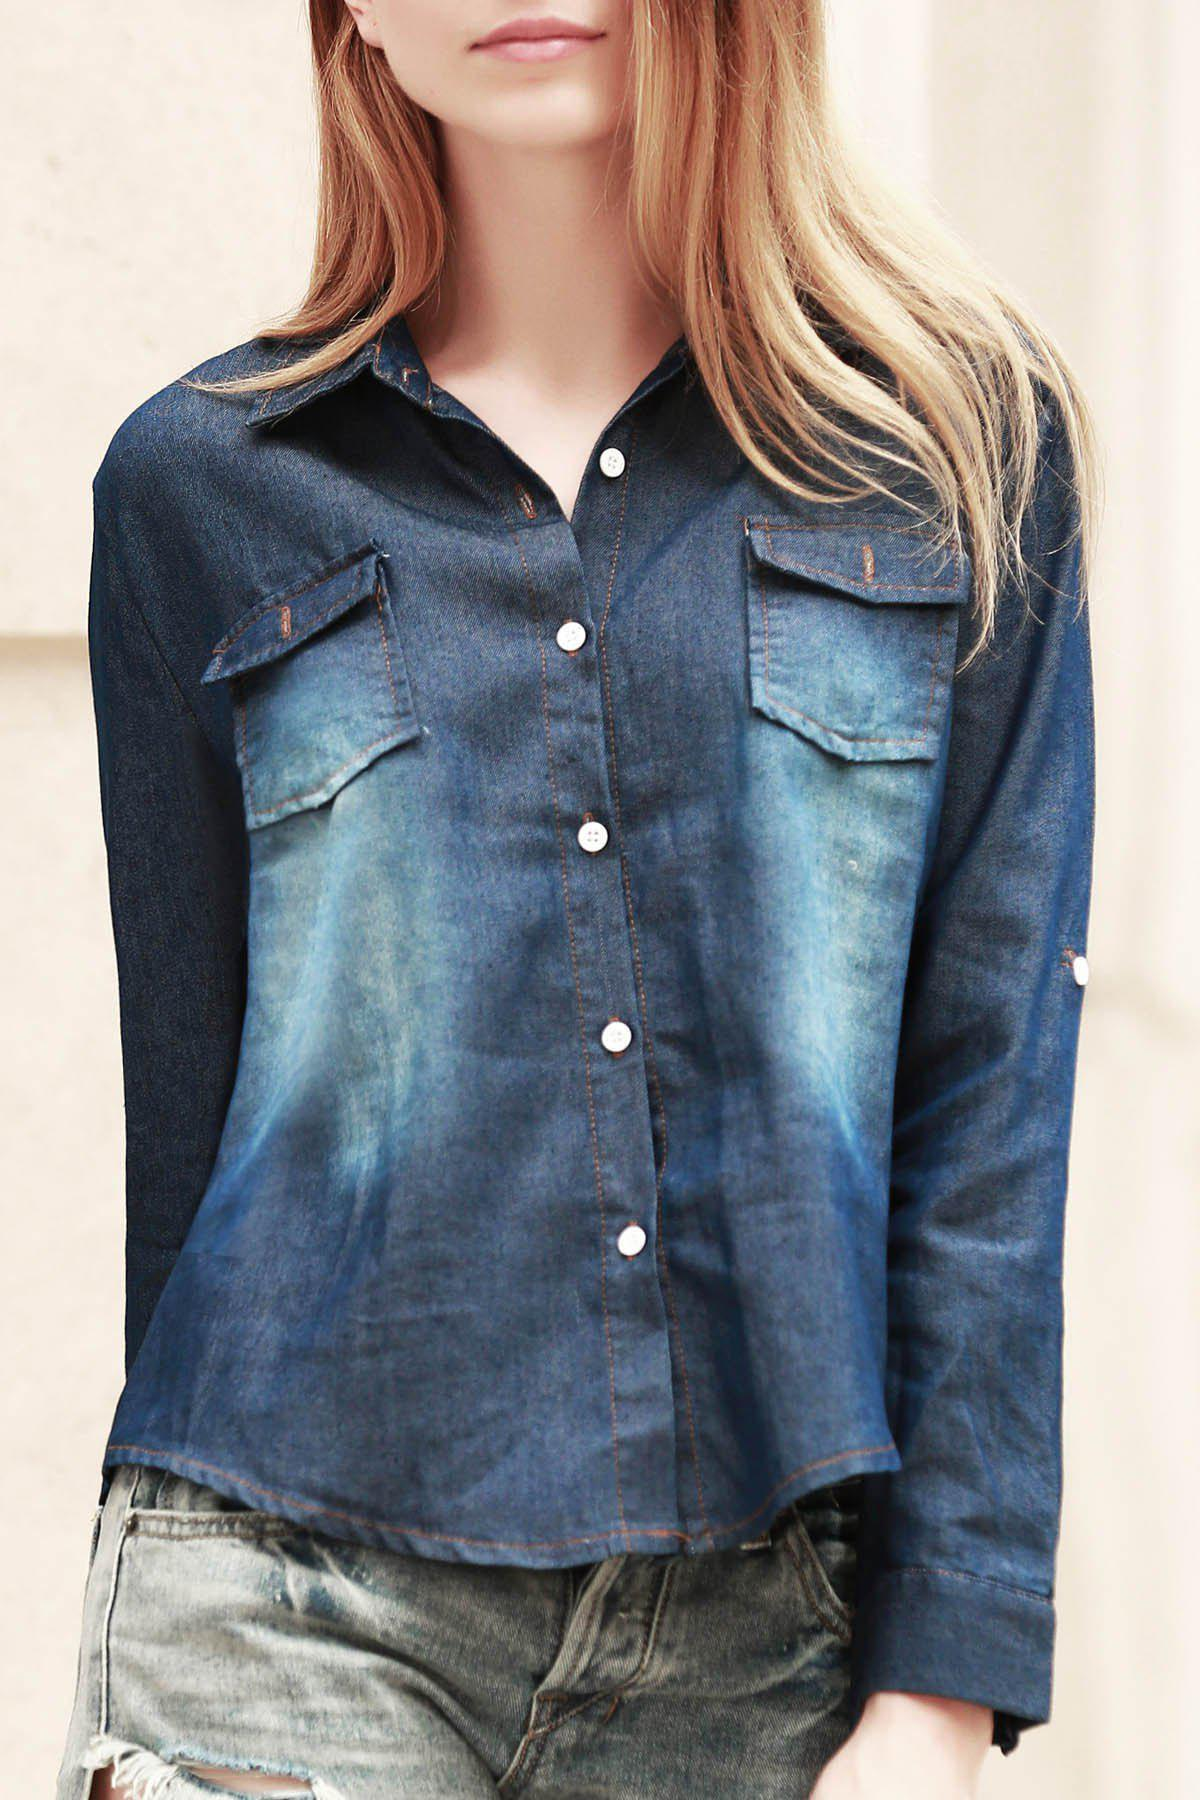 Fashionable Long Sleeve Shirt Collar Pocket Design Denim Women's Shirt - DEEP BLUE S